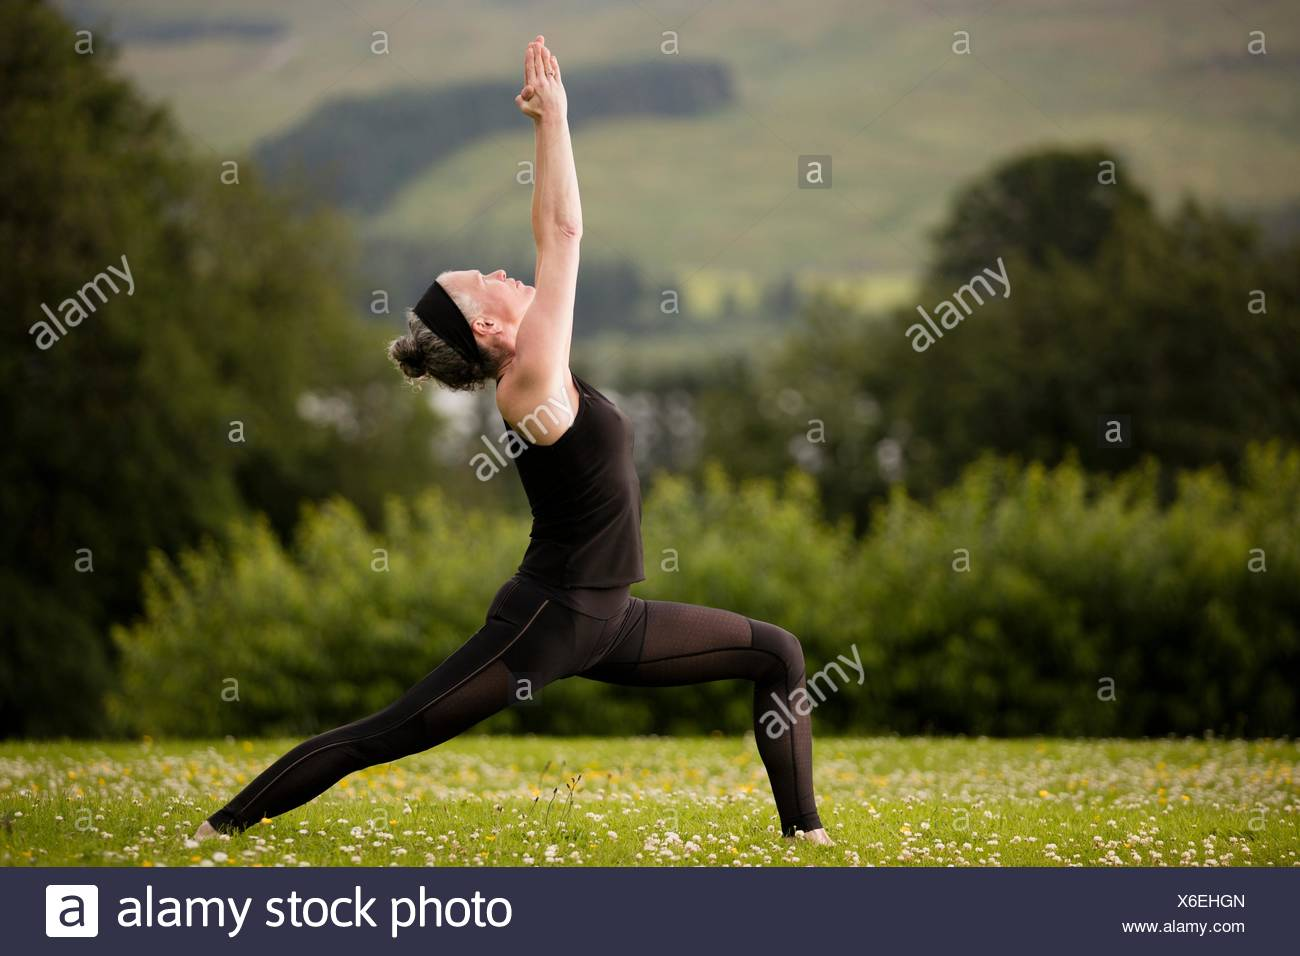 Mature woman practicing yoga warrior pose with arms raised in field - Stock Image